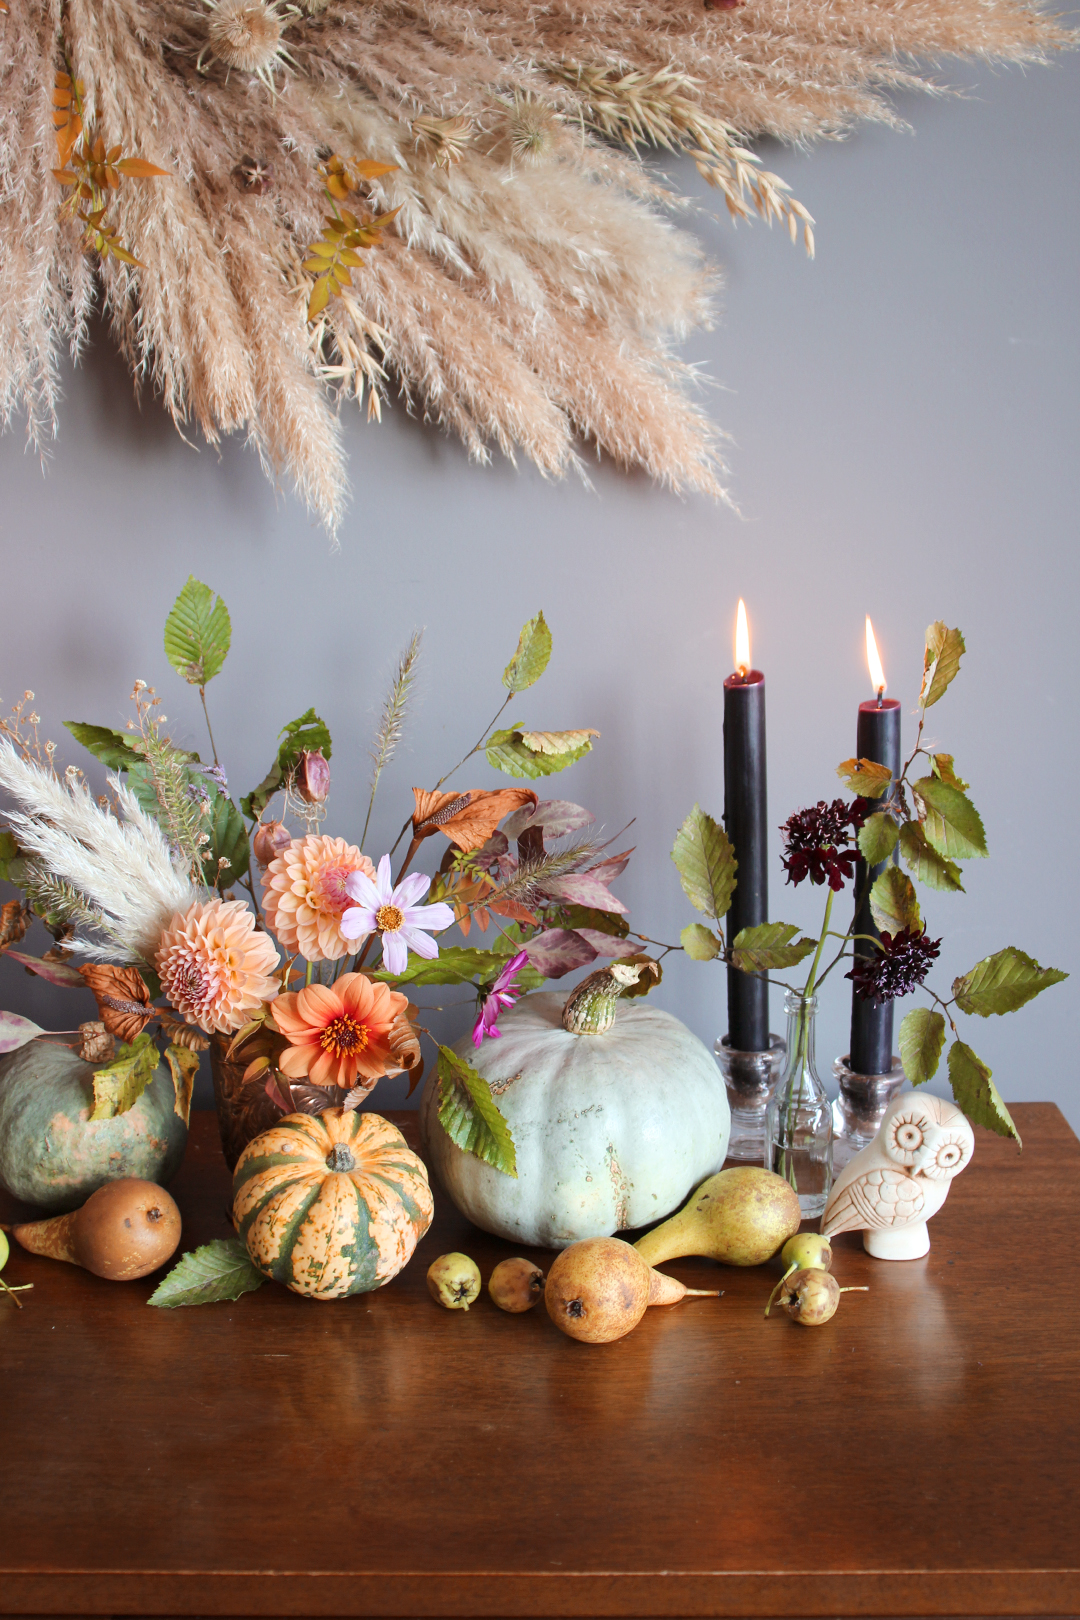 moody-natural-floral-display-halloween-fall-autuman-nancy-straughan.jpg